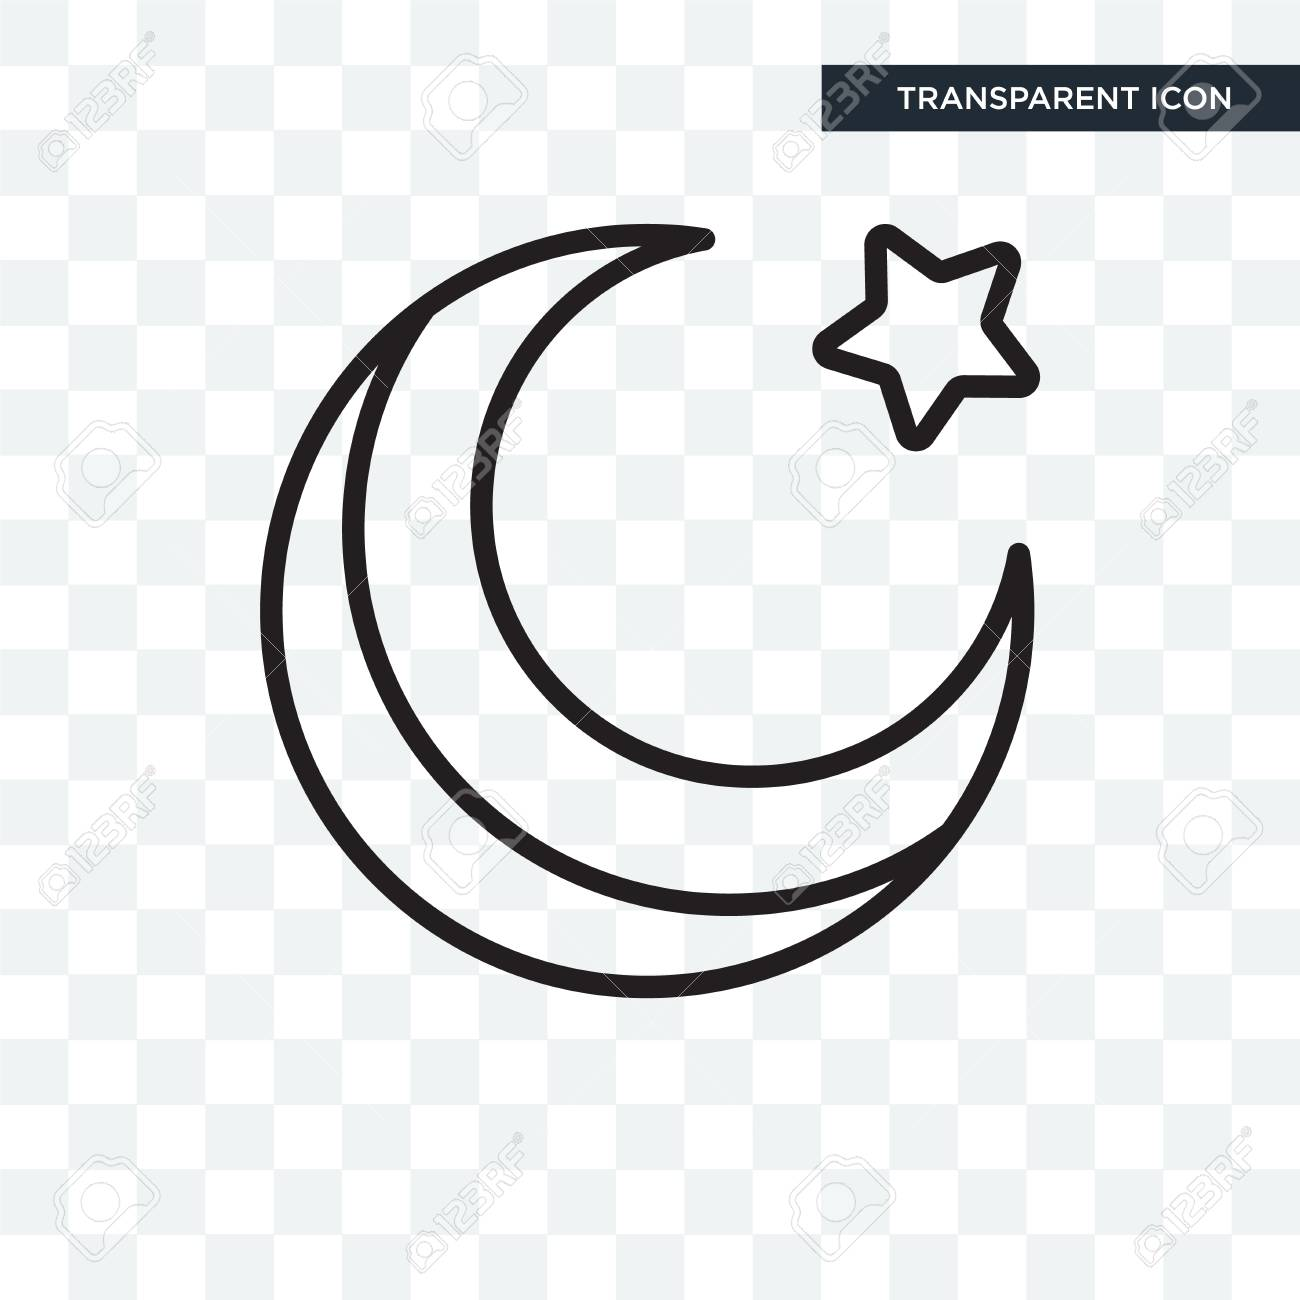 islam vector icon isolated on transparent background islam logo royalty free cliparts vectors and stock illustration image 108719919 islam vector icon isolated on transparent background islam logo